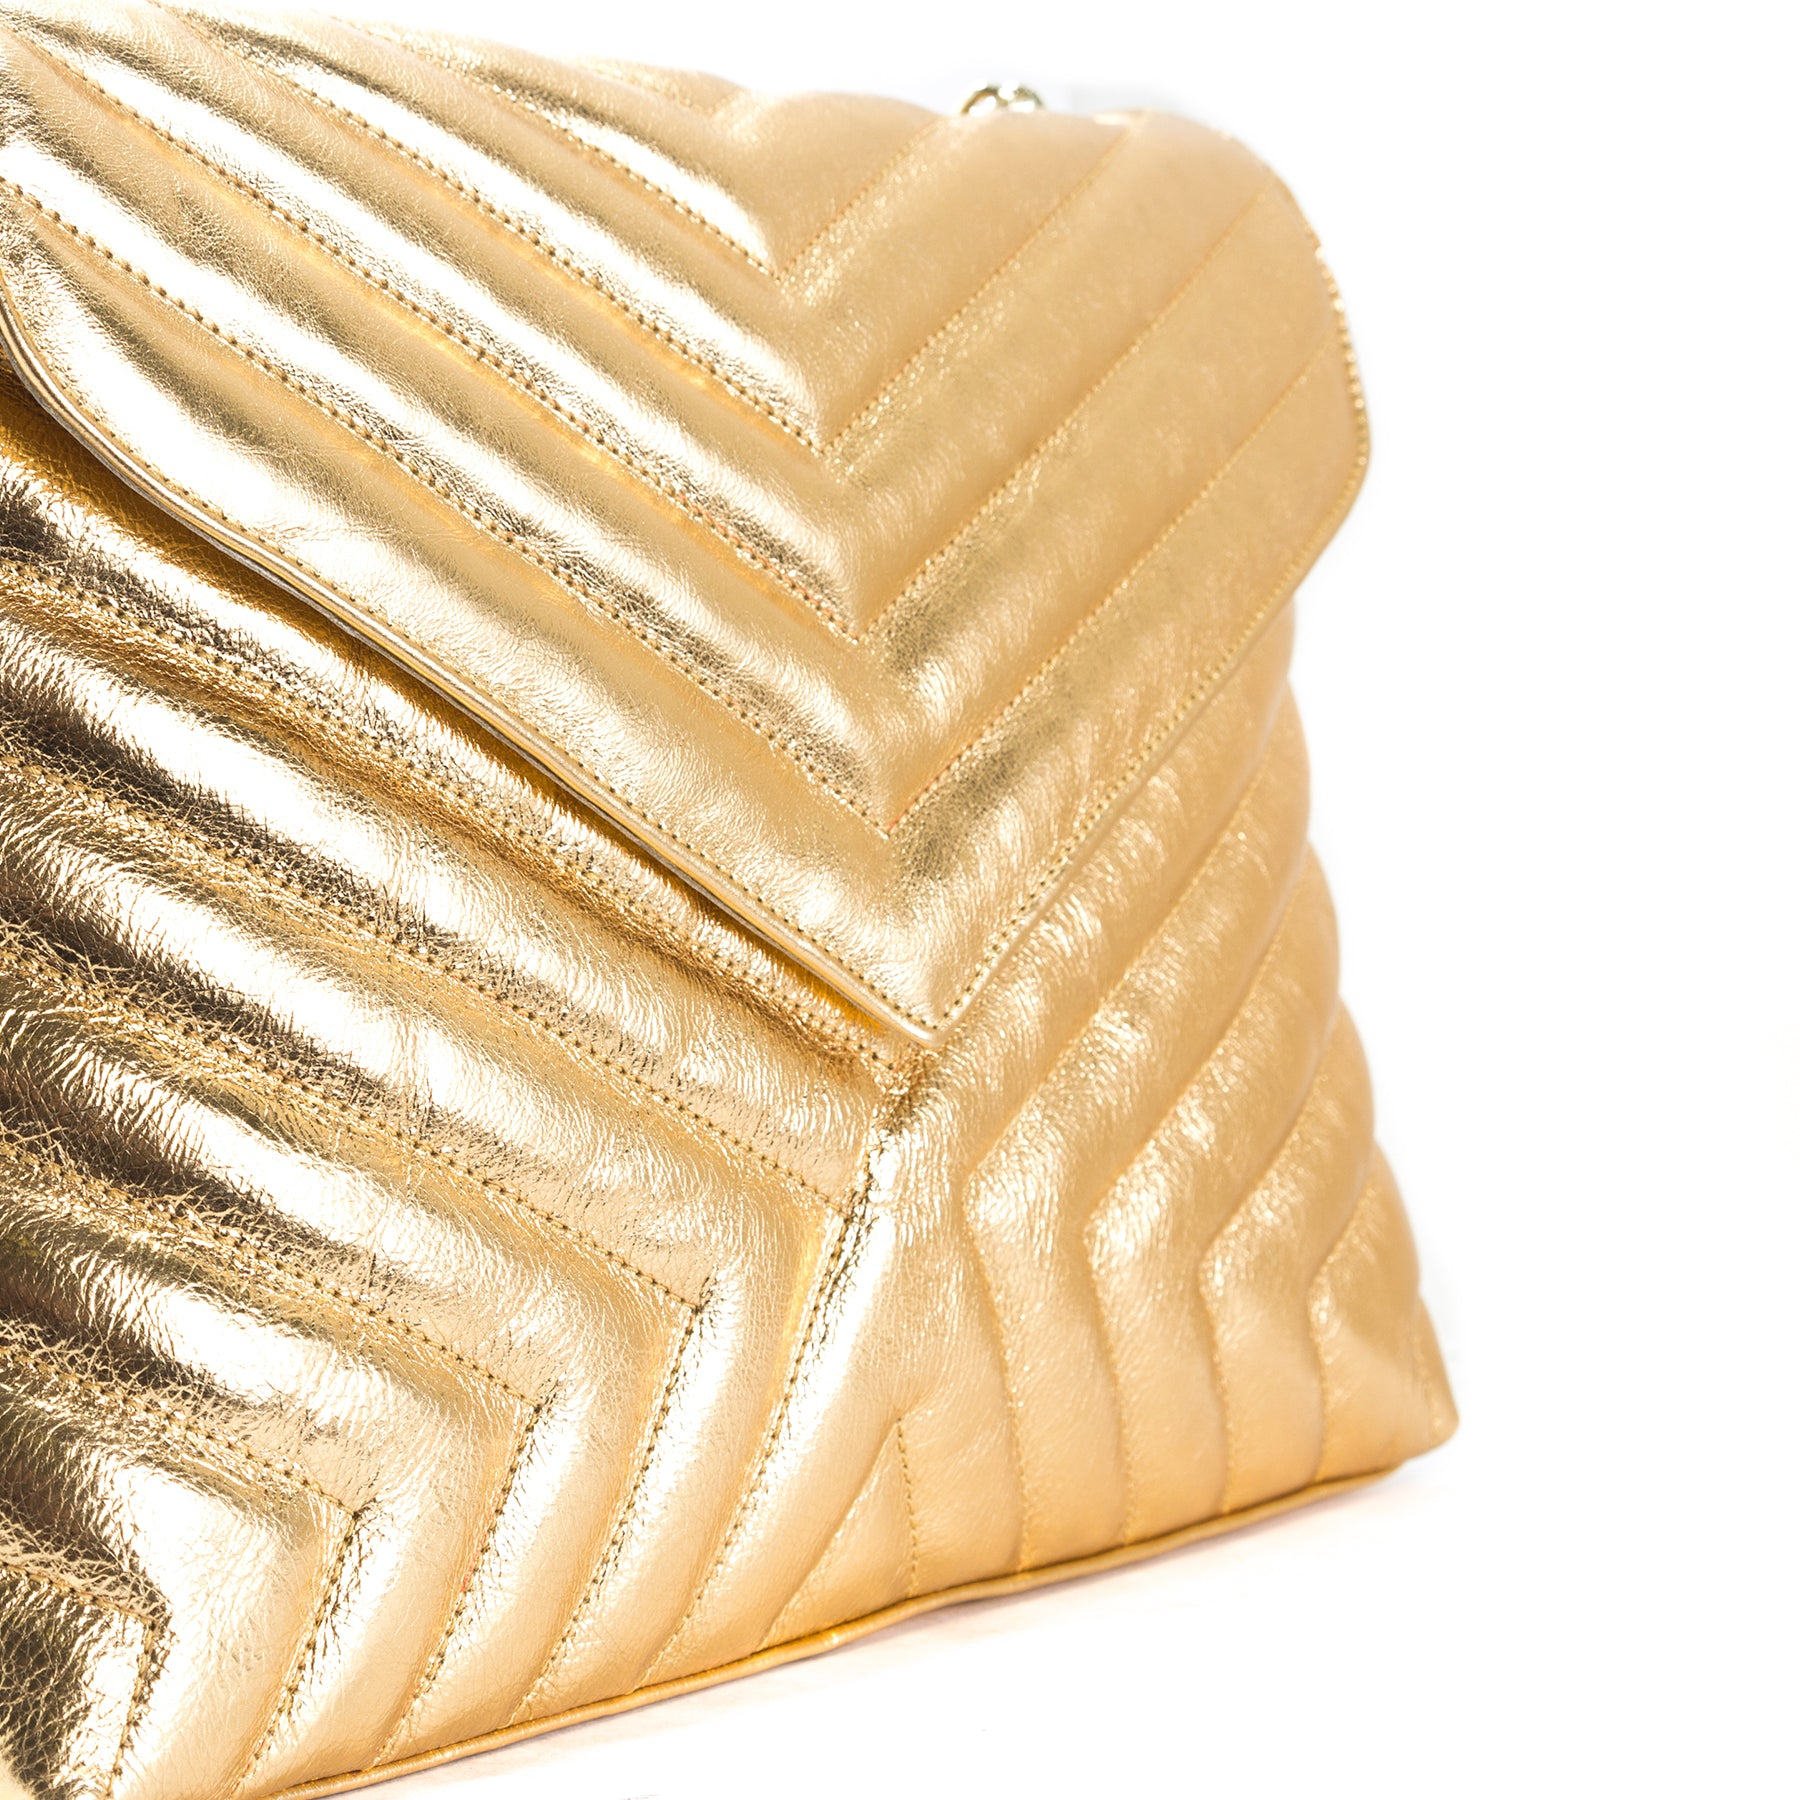 Melpo Gold Leather Bags